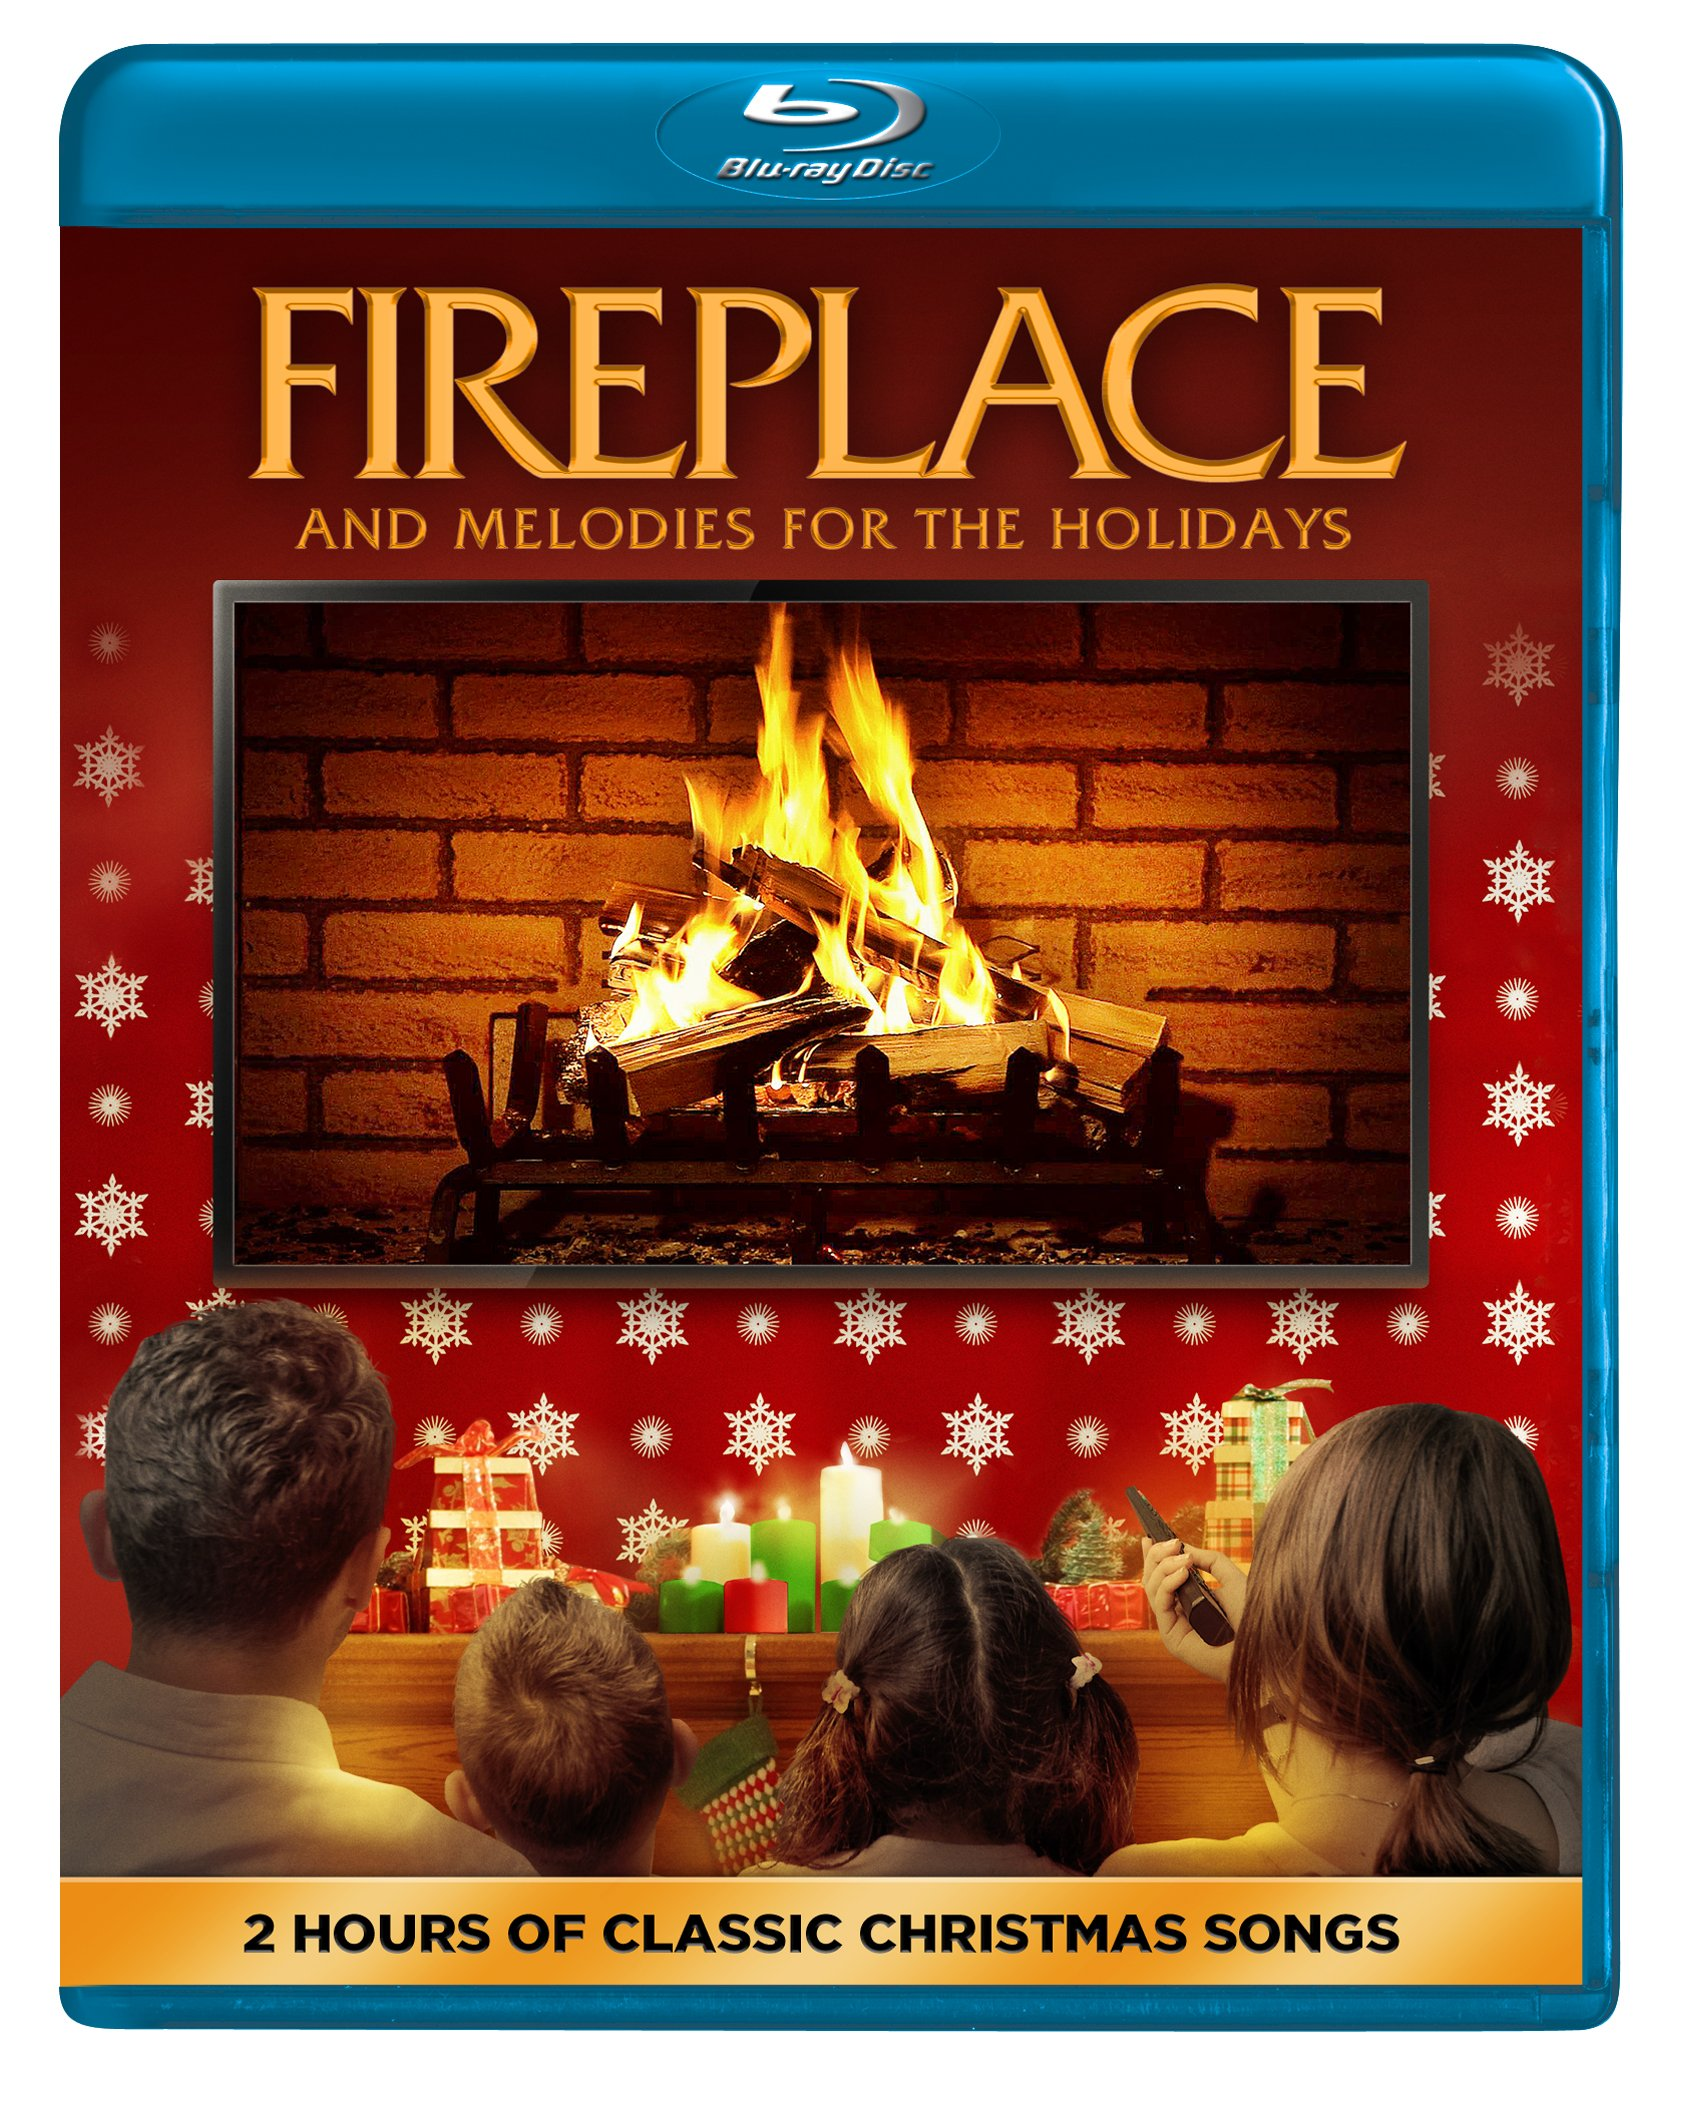 Blu-ray : Fireplace And Melodies For The Holidays (Widescreen, Digital Theater System, AC-3)